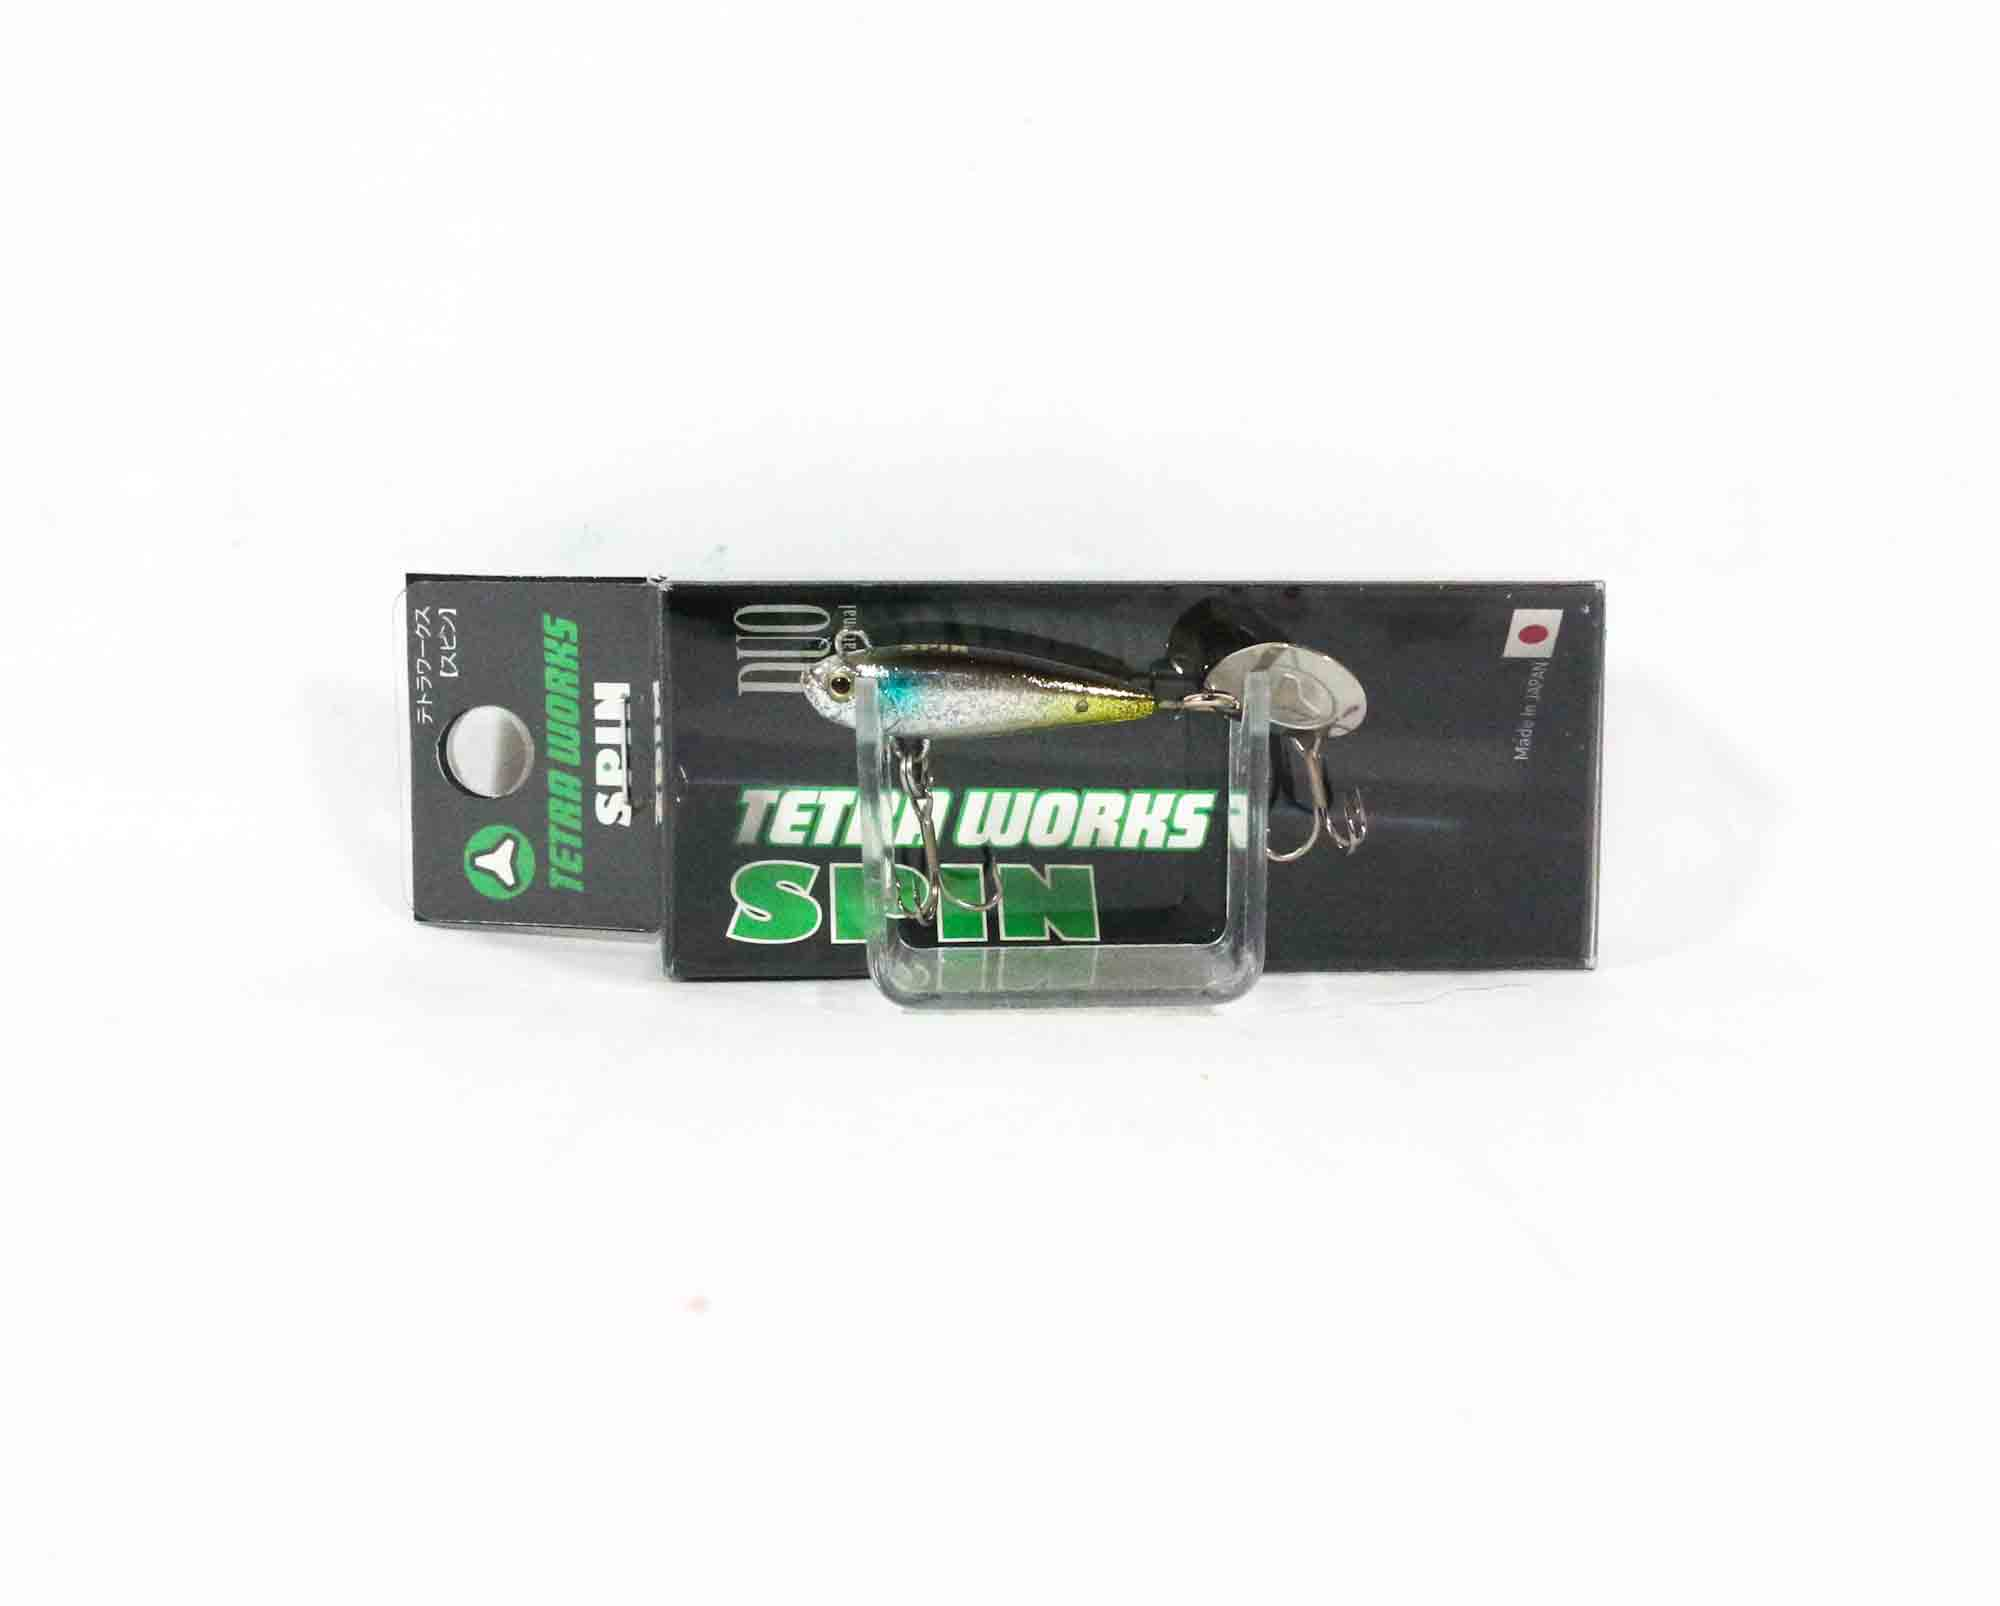 Duo Tetra Works Spin 28 mm 5 grams Sinking Lure CCC0458 (3178)